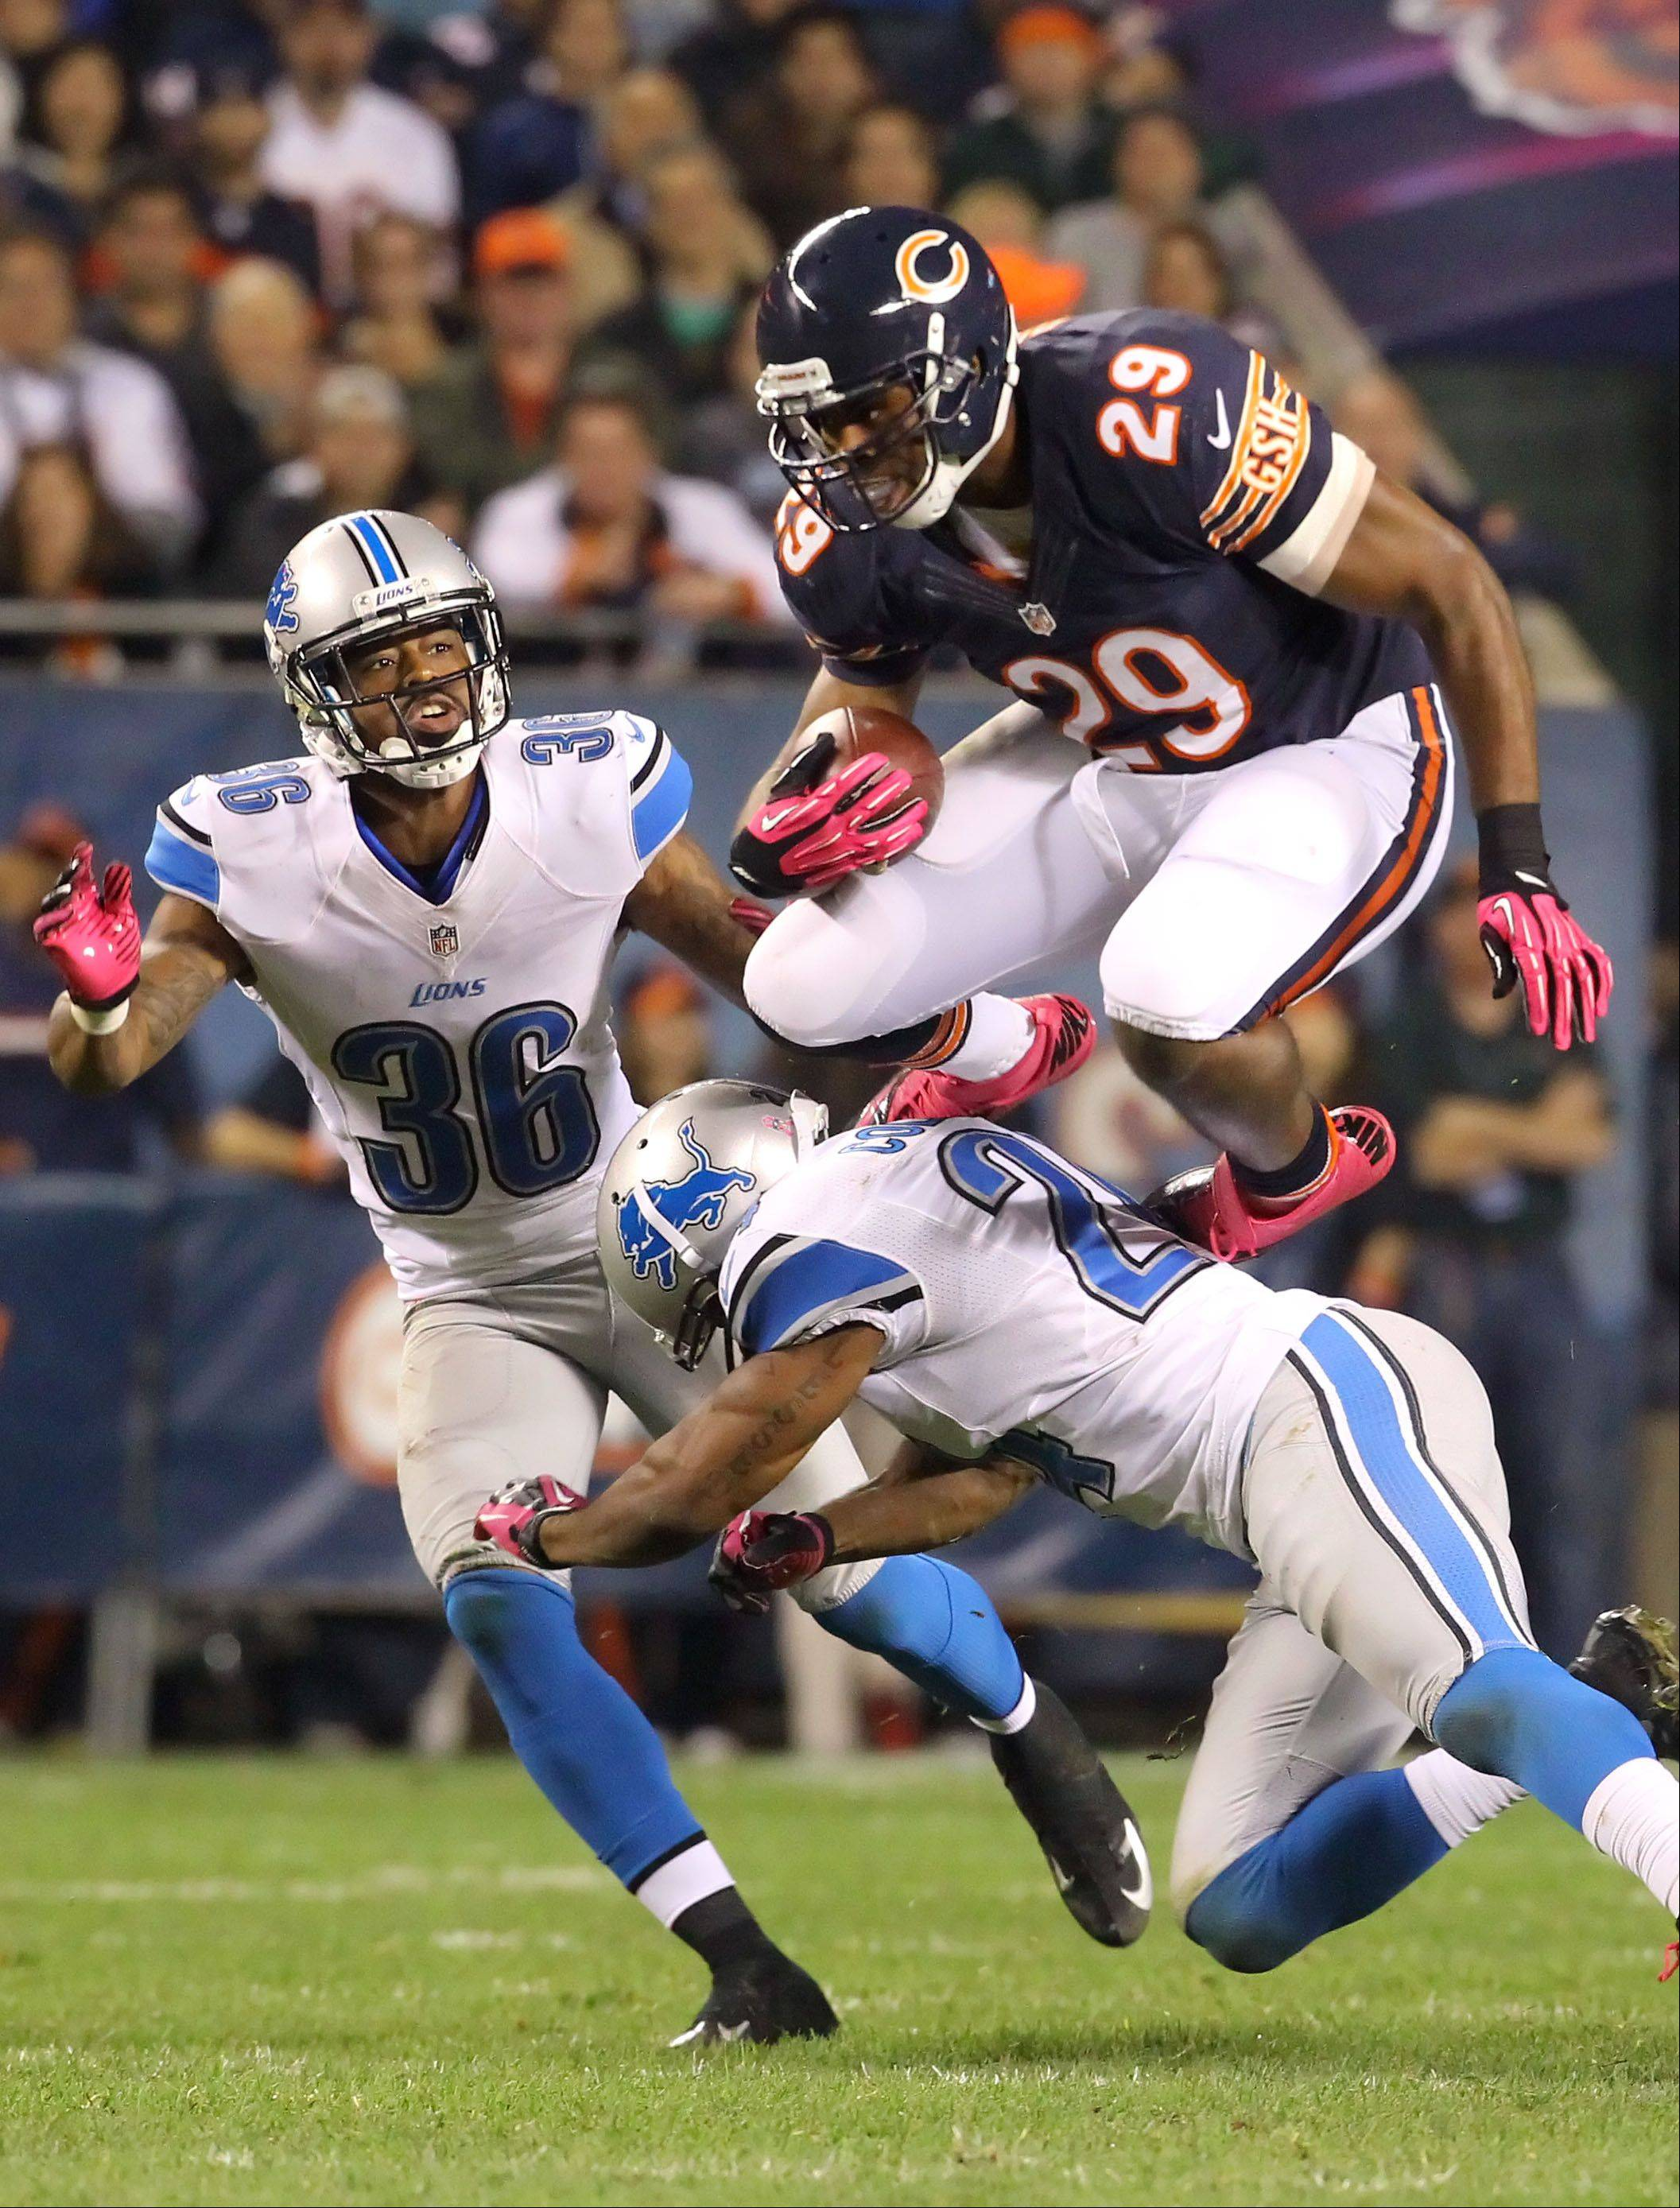 With teammate Matt Forte rushing for 96 yards, running back Michael Bush (29) also contributed several strong runs Monday night against the Detroit Lions.